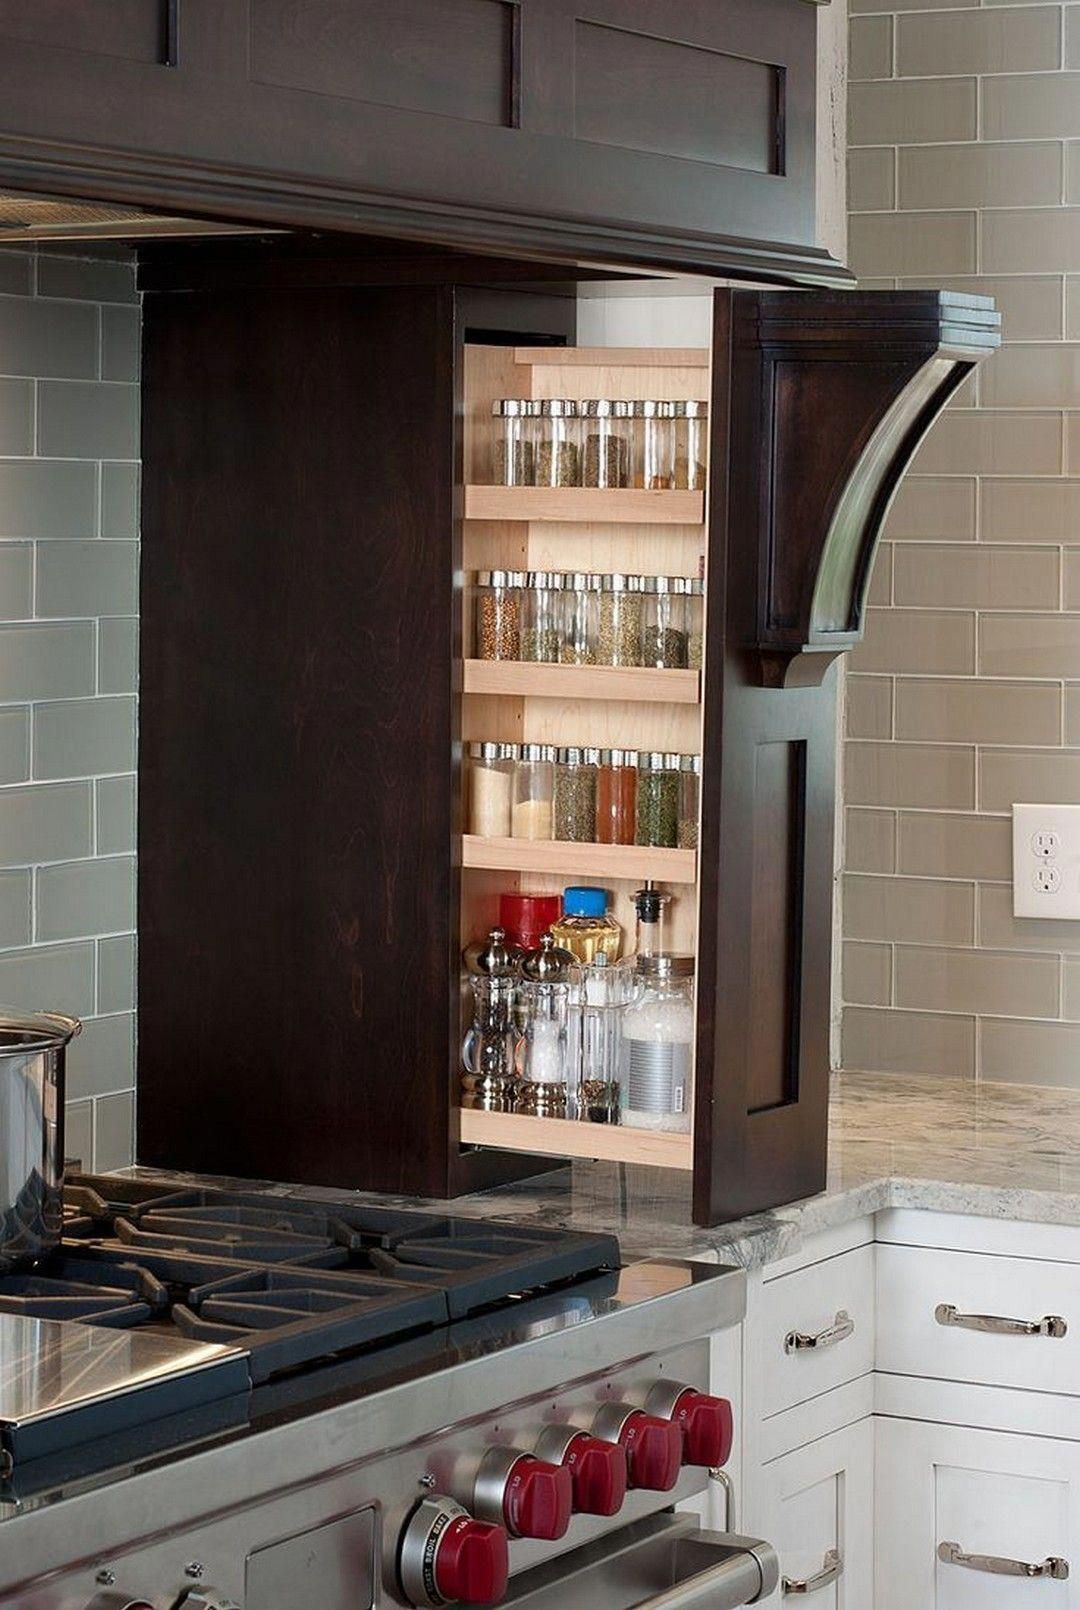 8 Decorative Objects To Bloom With Style Kitchen Design Farmhouse Kitchen Cabinets Kitchen Design Pictures